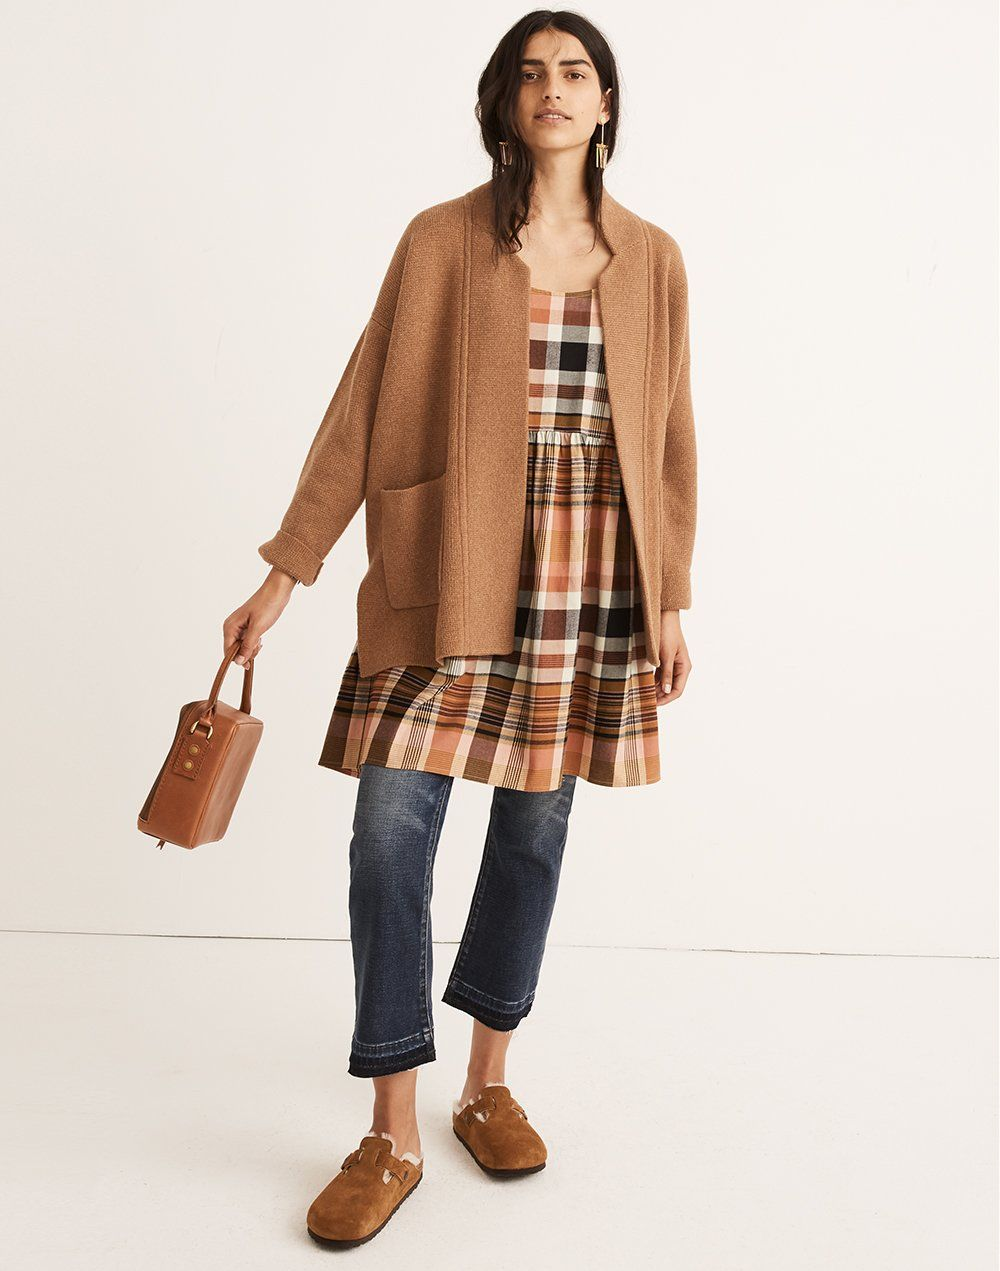 Madewell Spencer Sweater Coat Worn With Plaid Babydoll Cami Dress